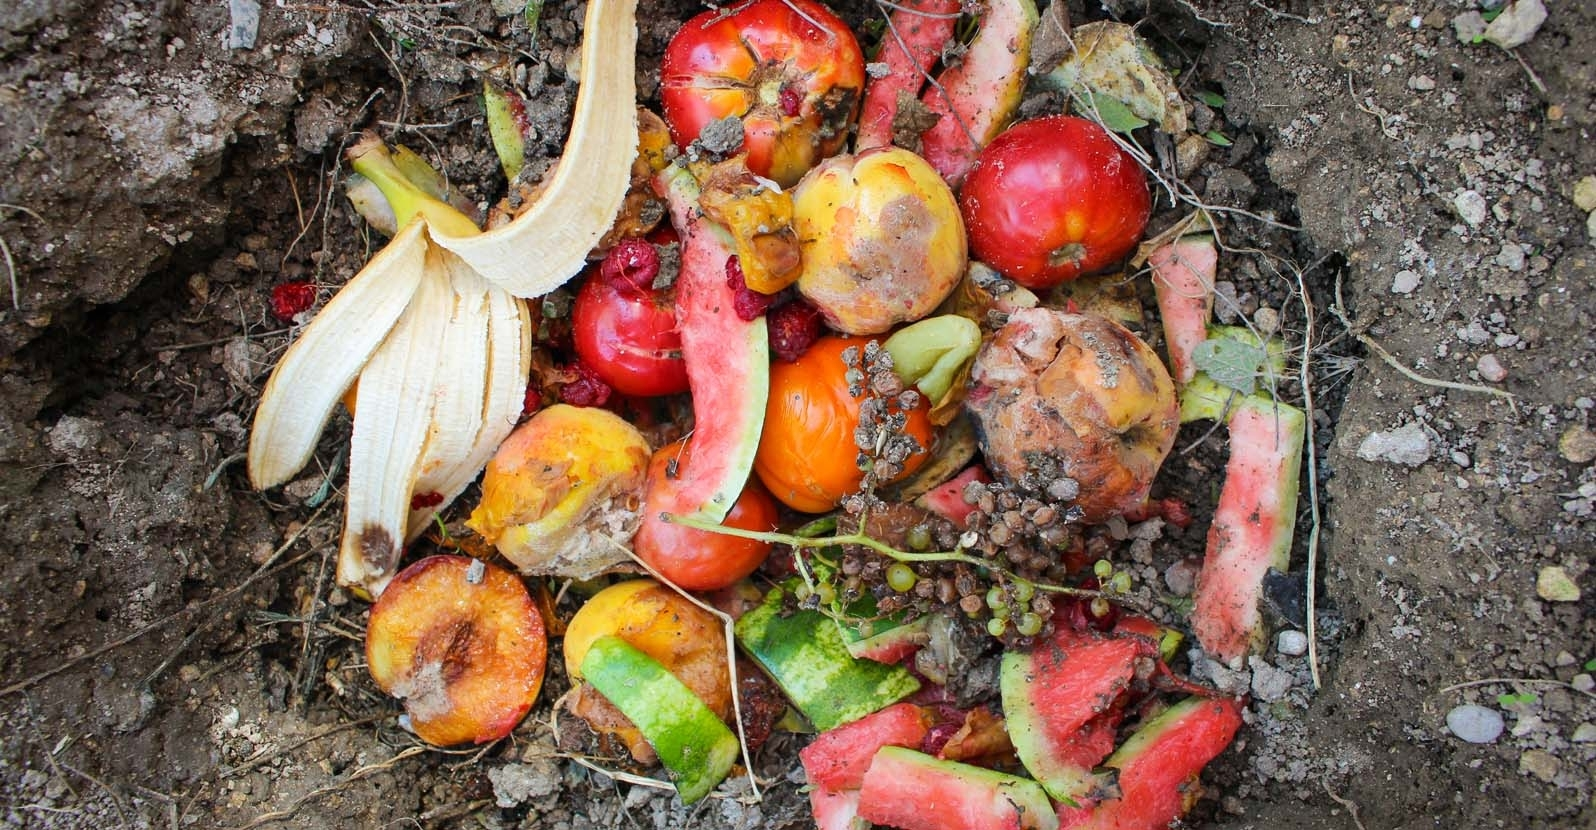 Guide To Direct Composting My Garden Life